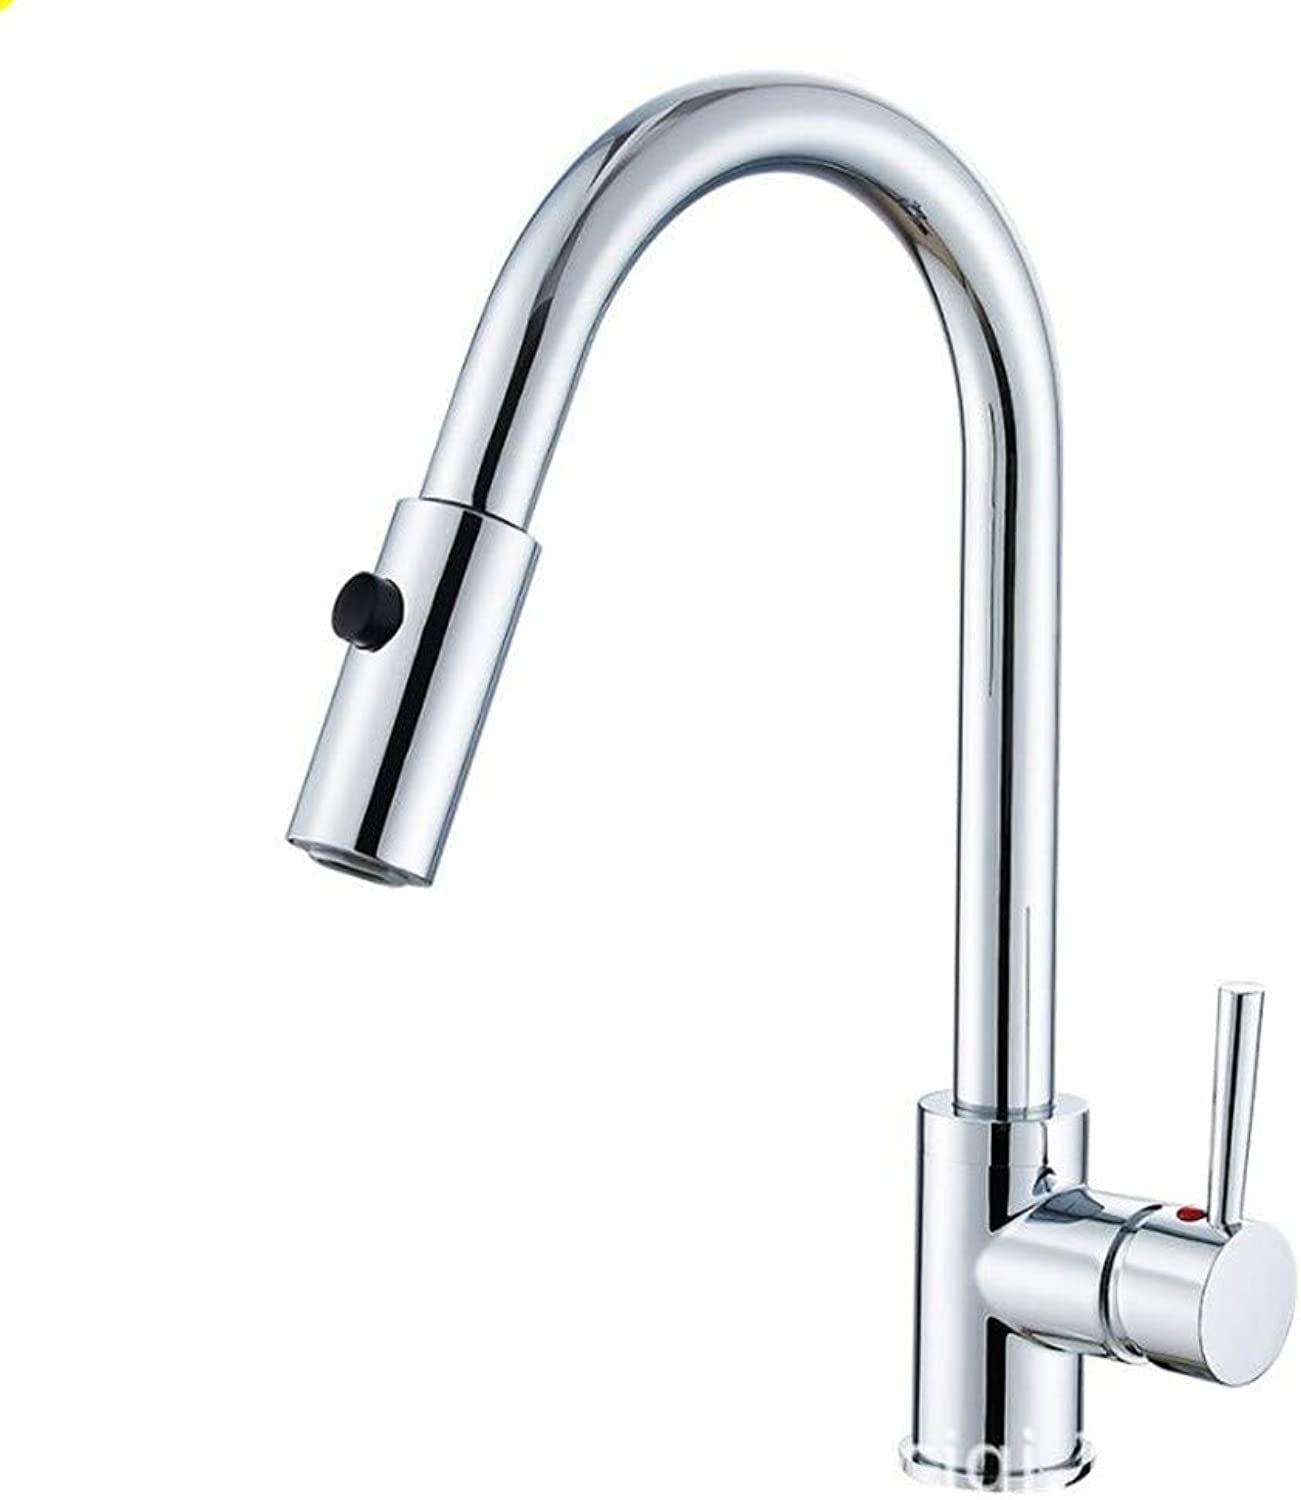 Bathroom Sink Basin Lever Mixer Tap Draw-Type Washbasin Faucet Kitchen Sink Cold and Hot Pull Faucet